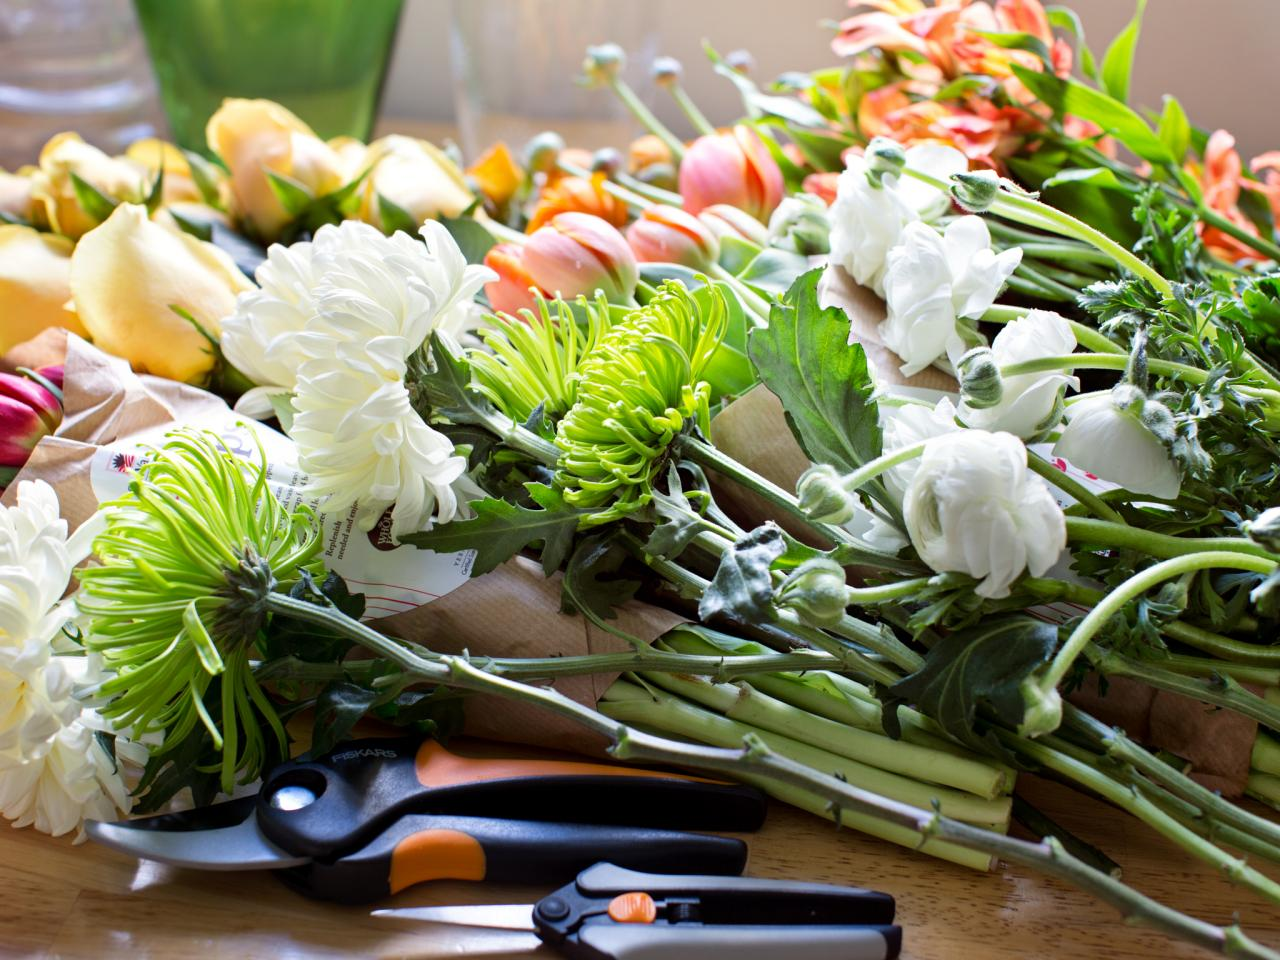 How to care for flowers